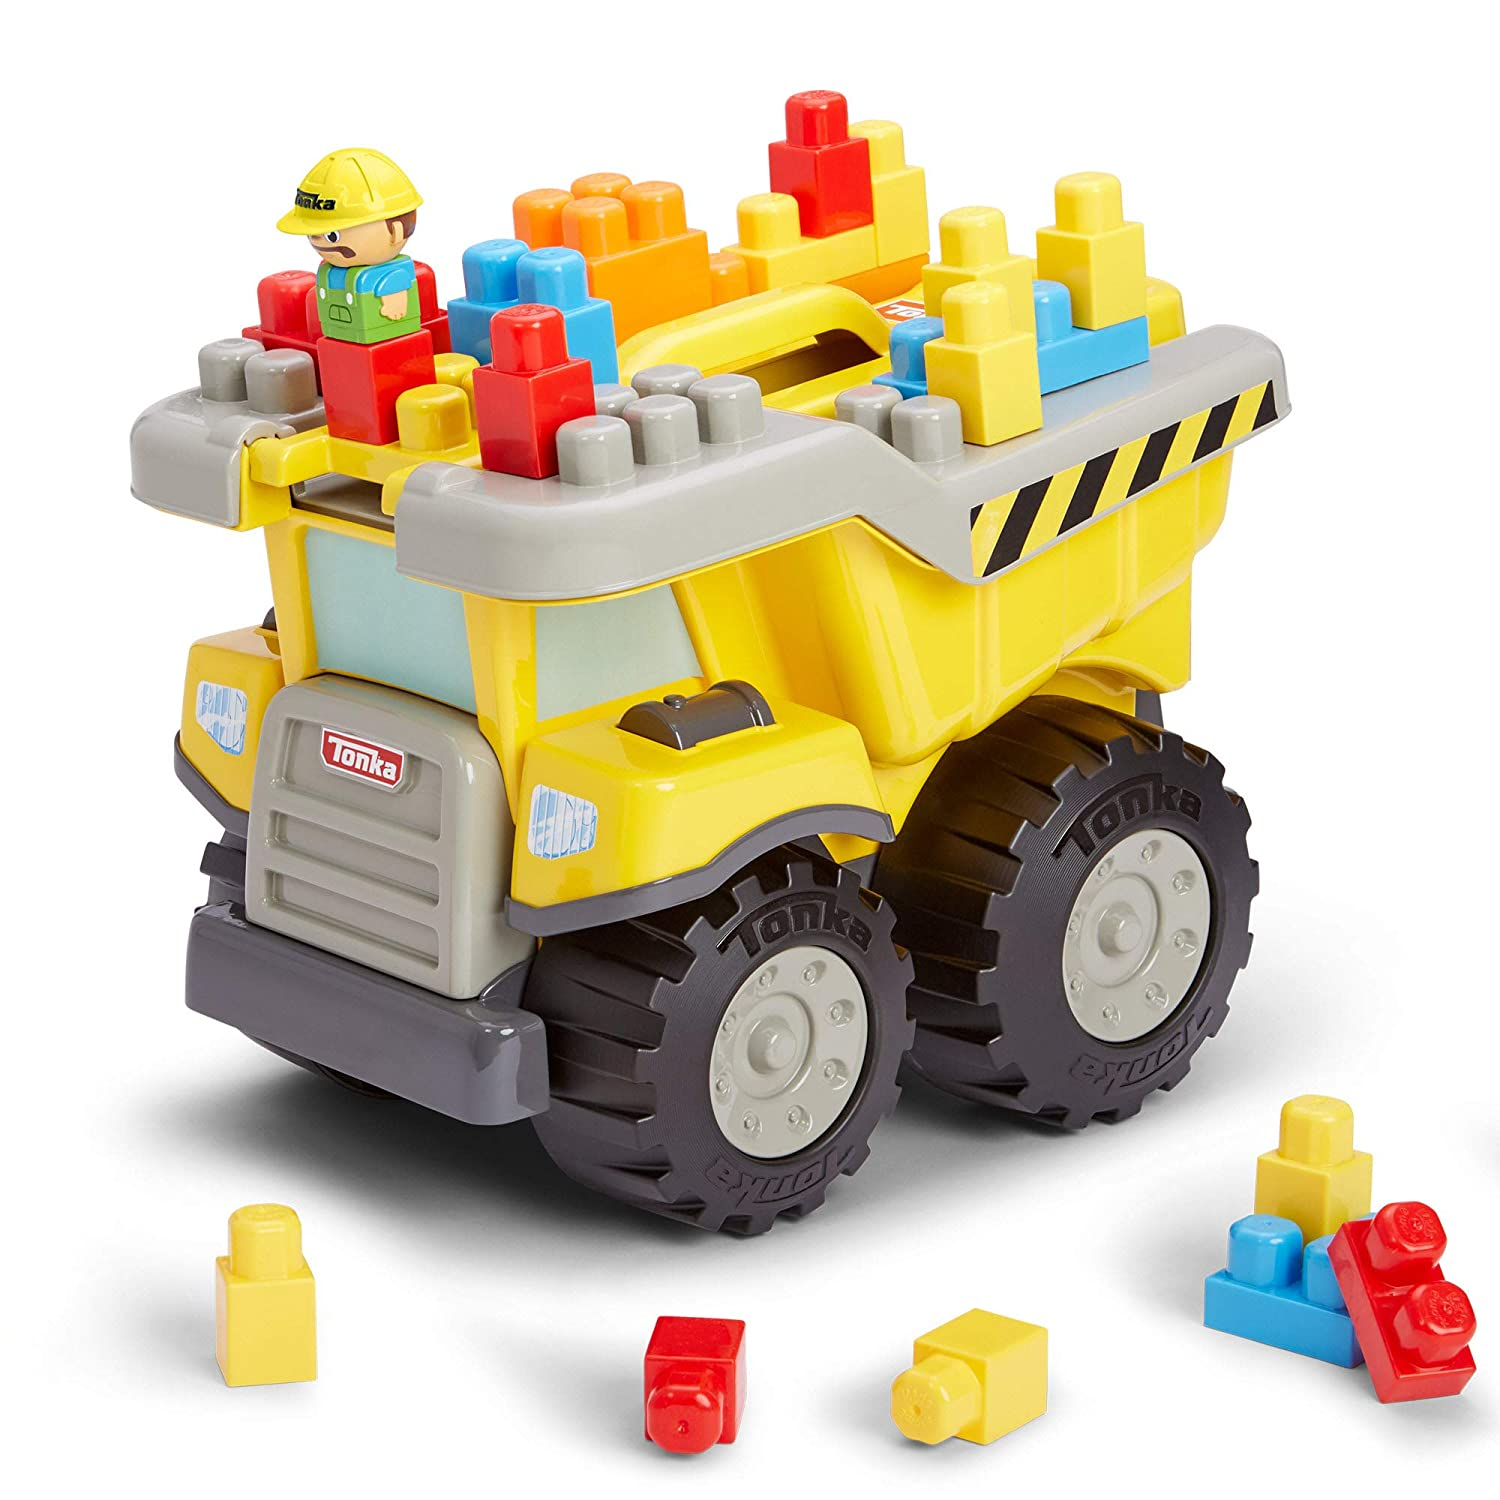 Amazon.com: Tonka Tow and Go Large Dump Truck with Building Blocks: Toys &  Games